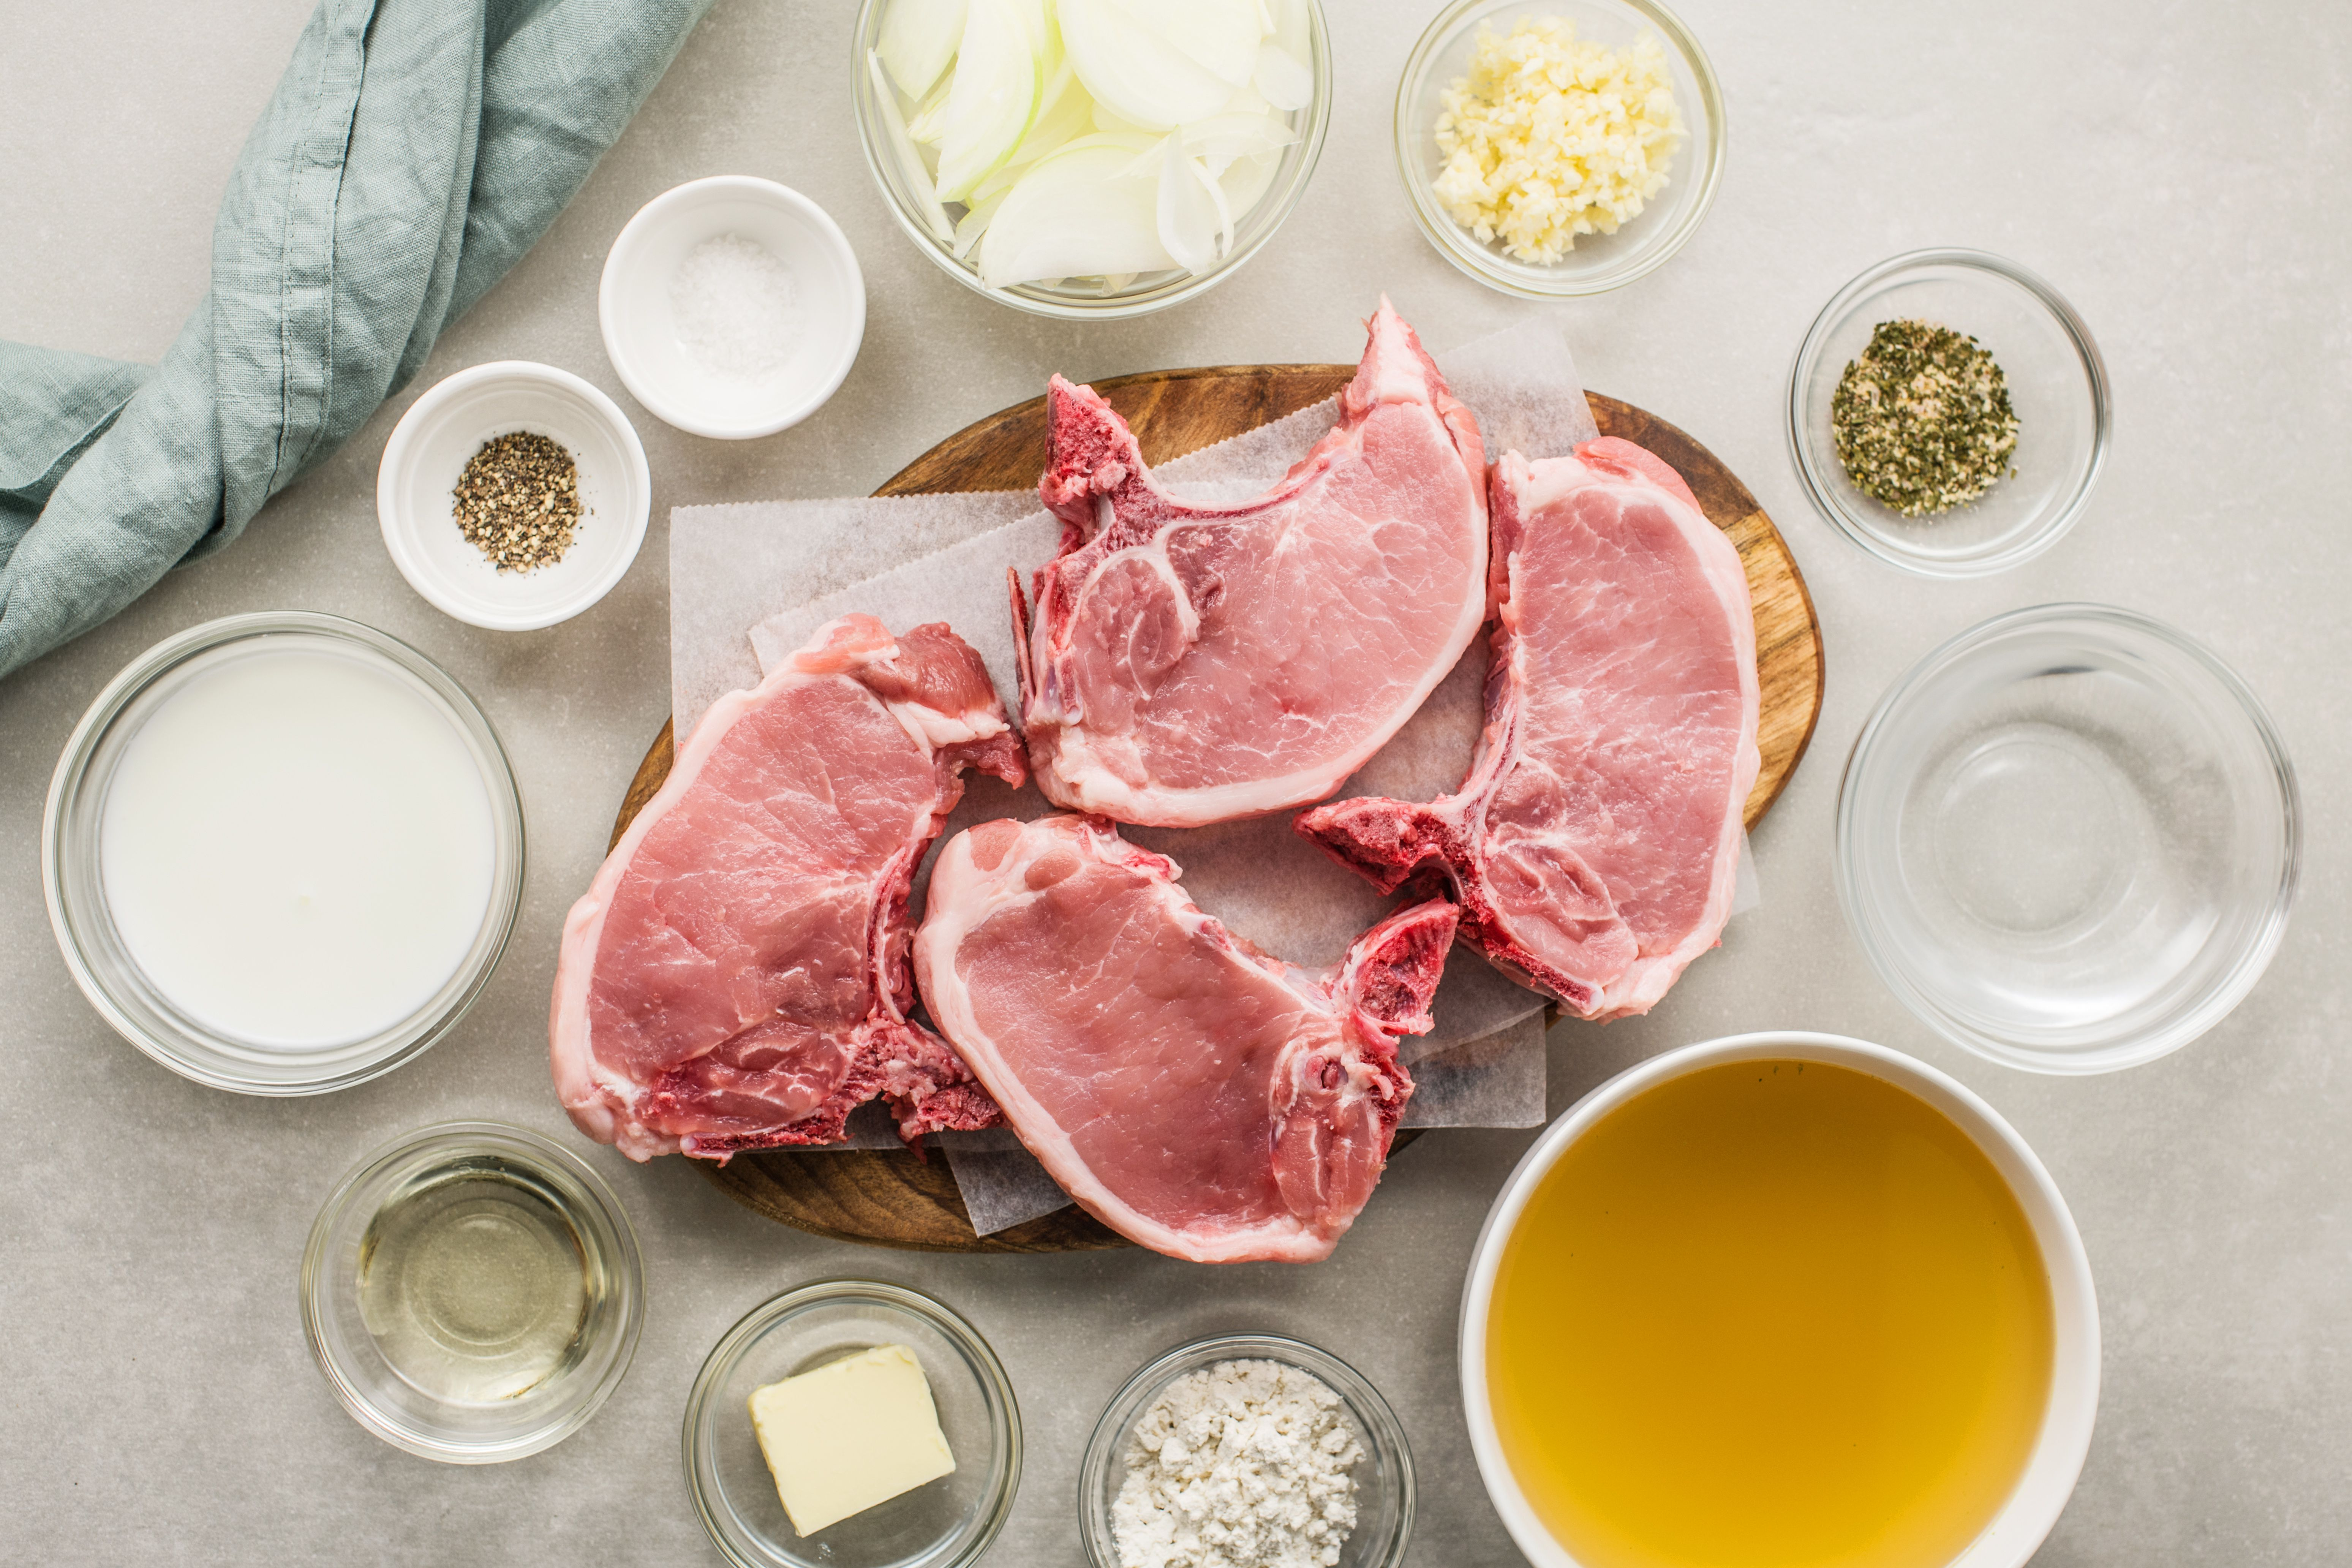 Ingredients for smothered pork chops